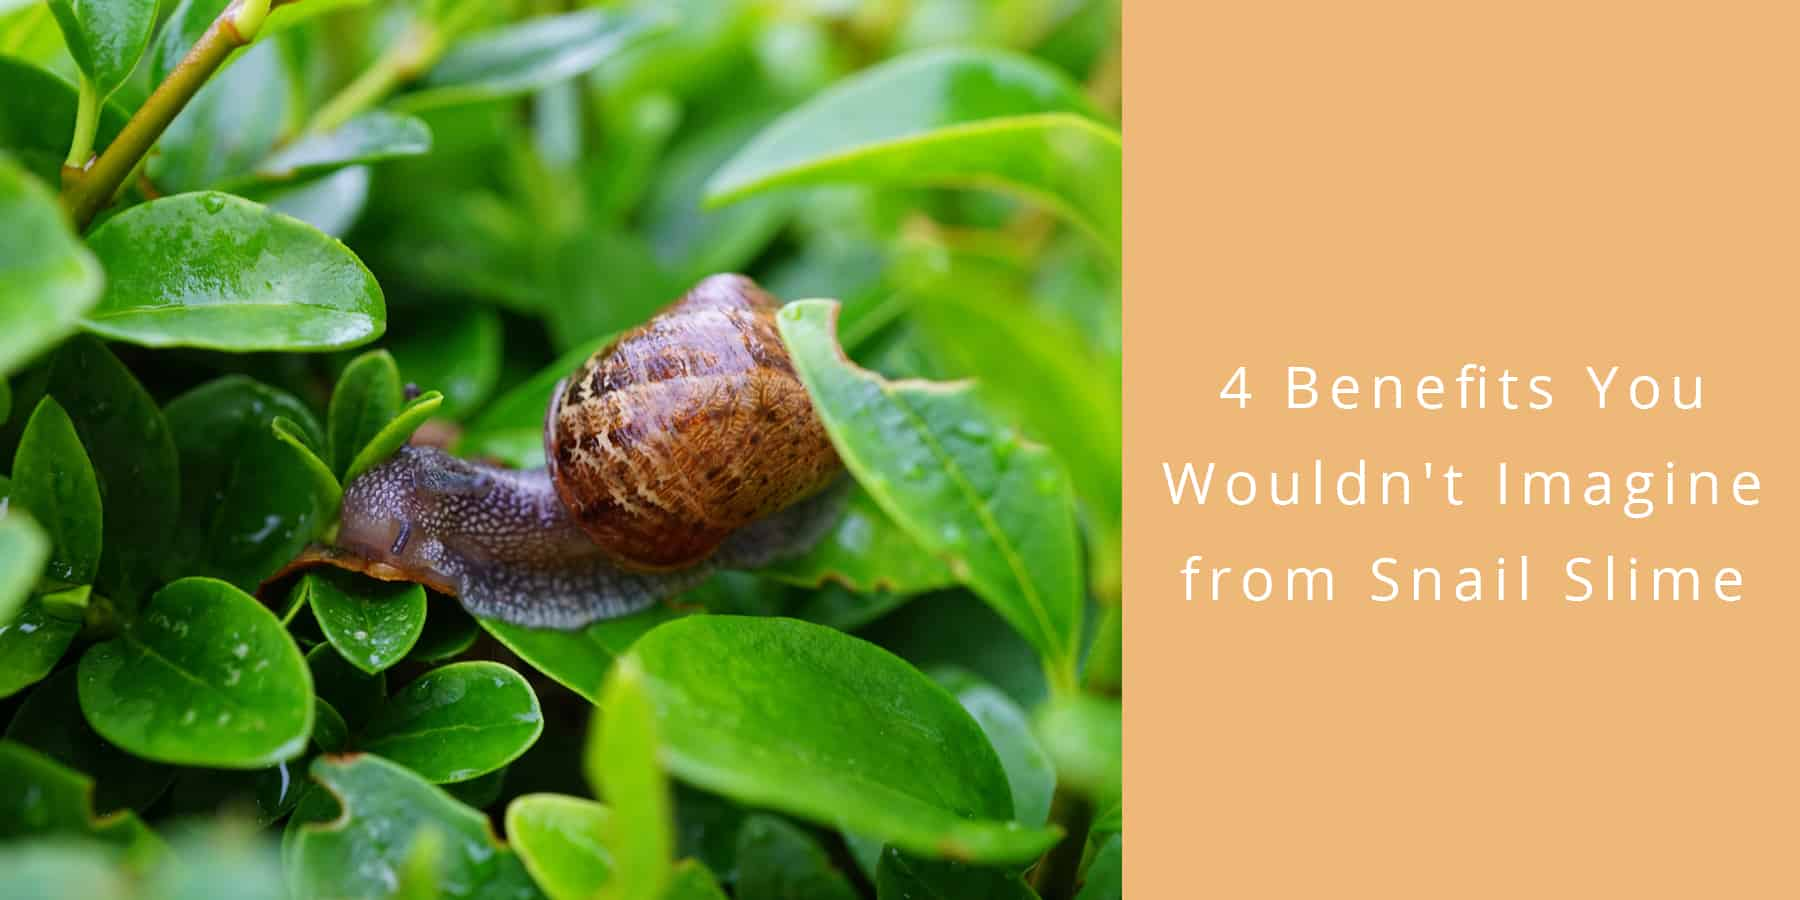 4 Benefits You Wouldn't Imagine from Snail Slime